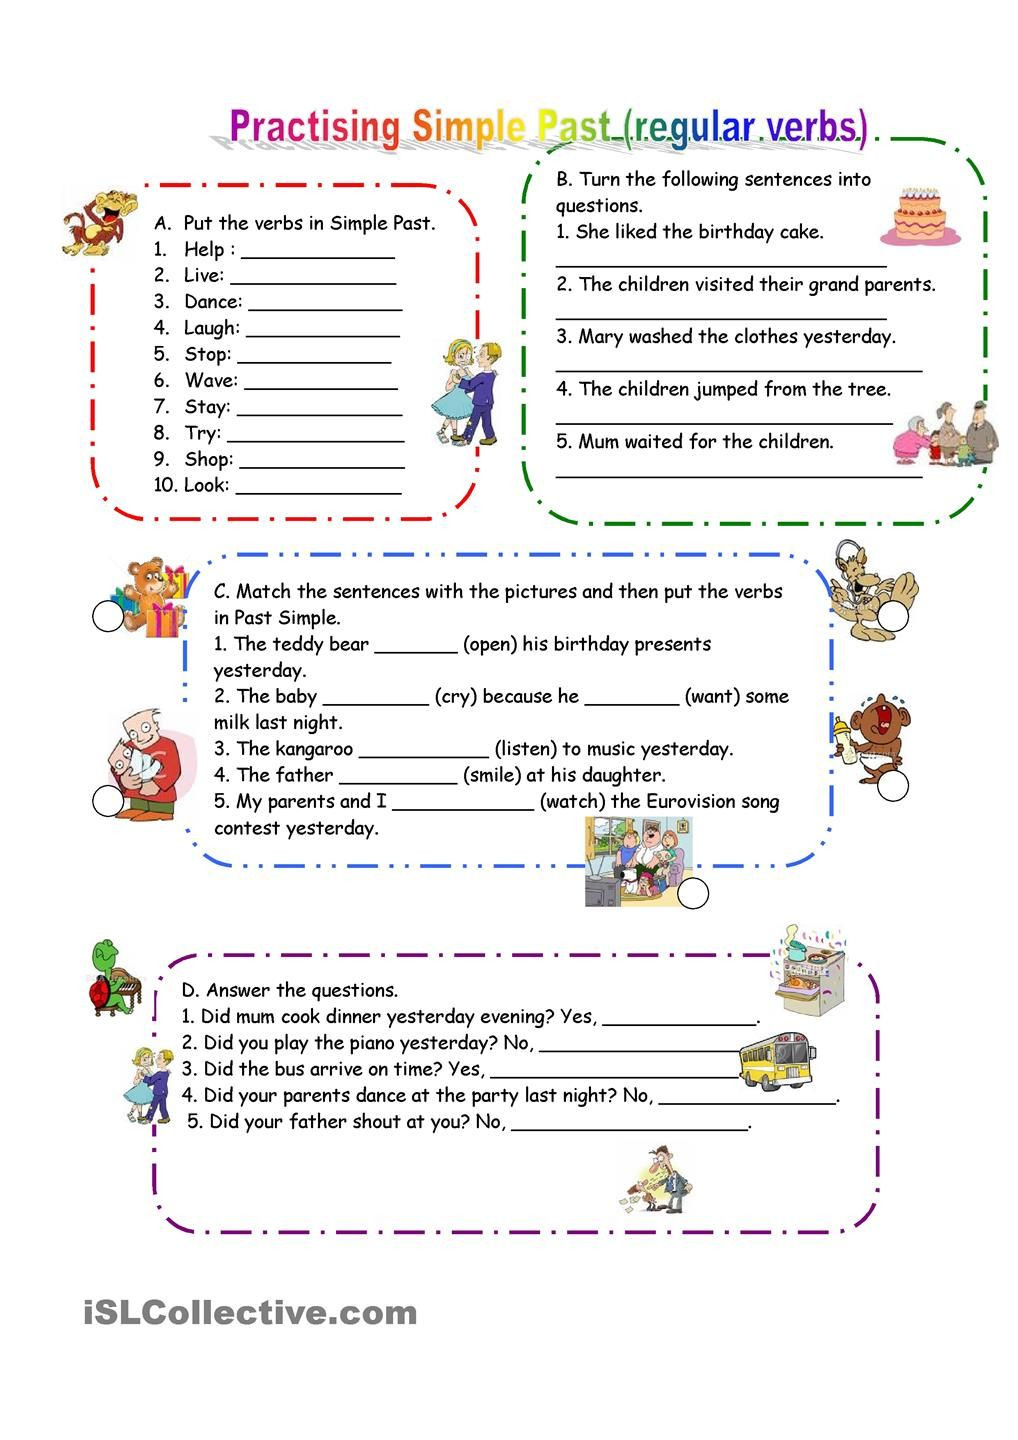 Verb Tense Worksheets Middle School Practicing Past Simple Regular Verbs